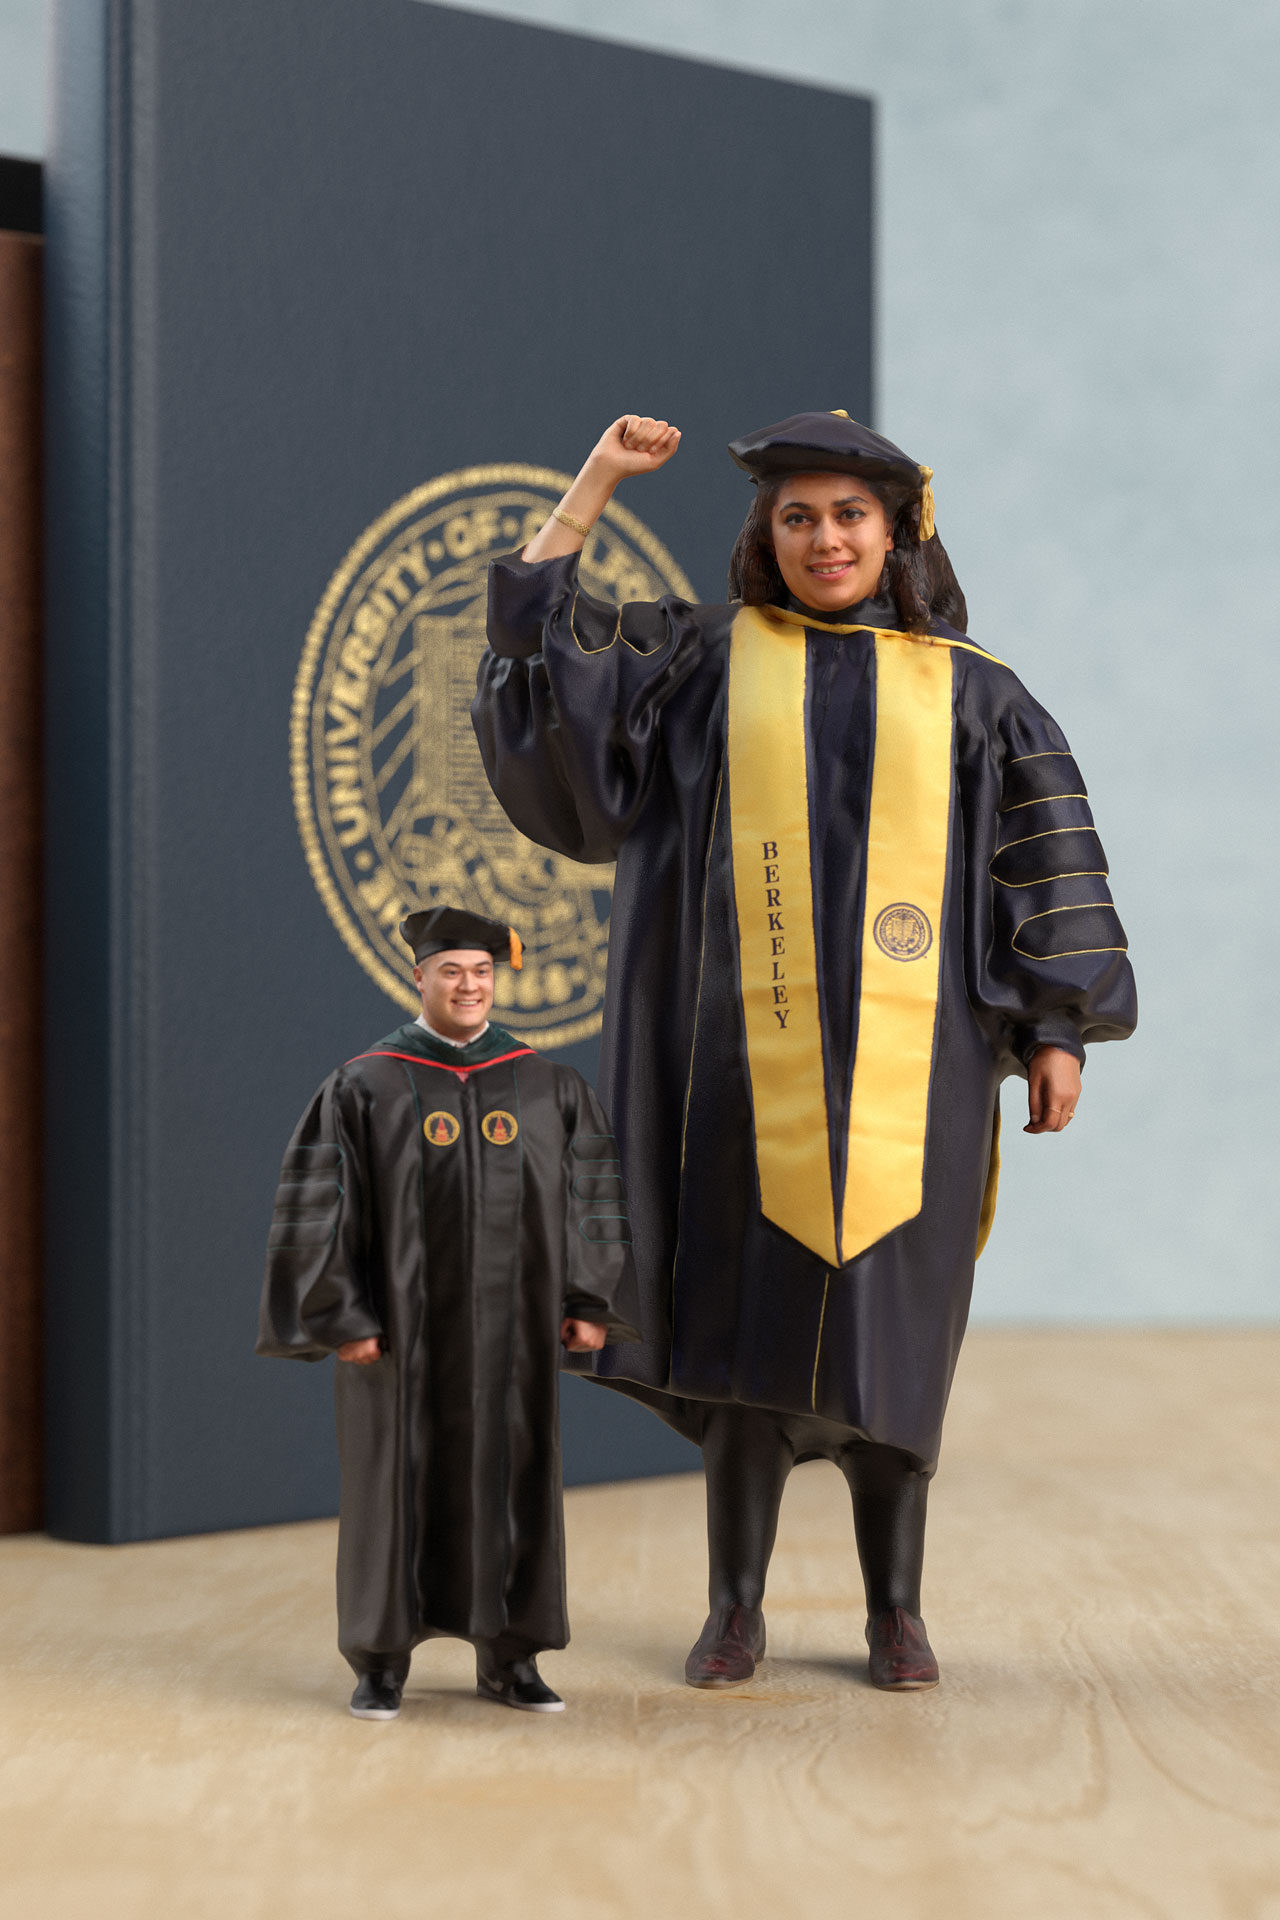 a man and woman in graduation attire.